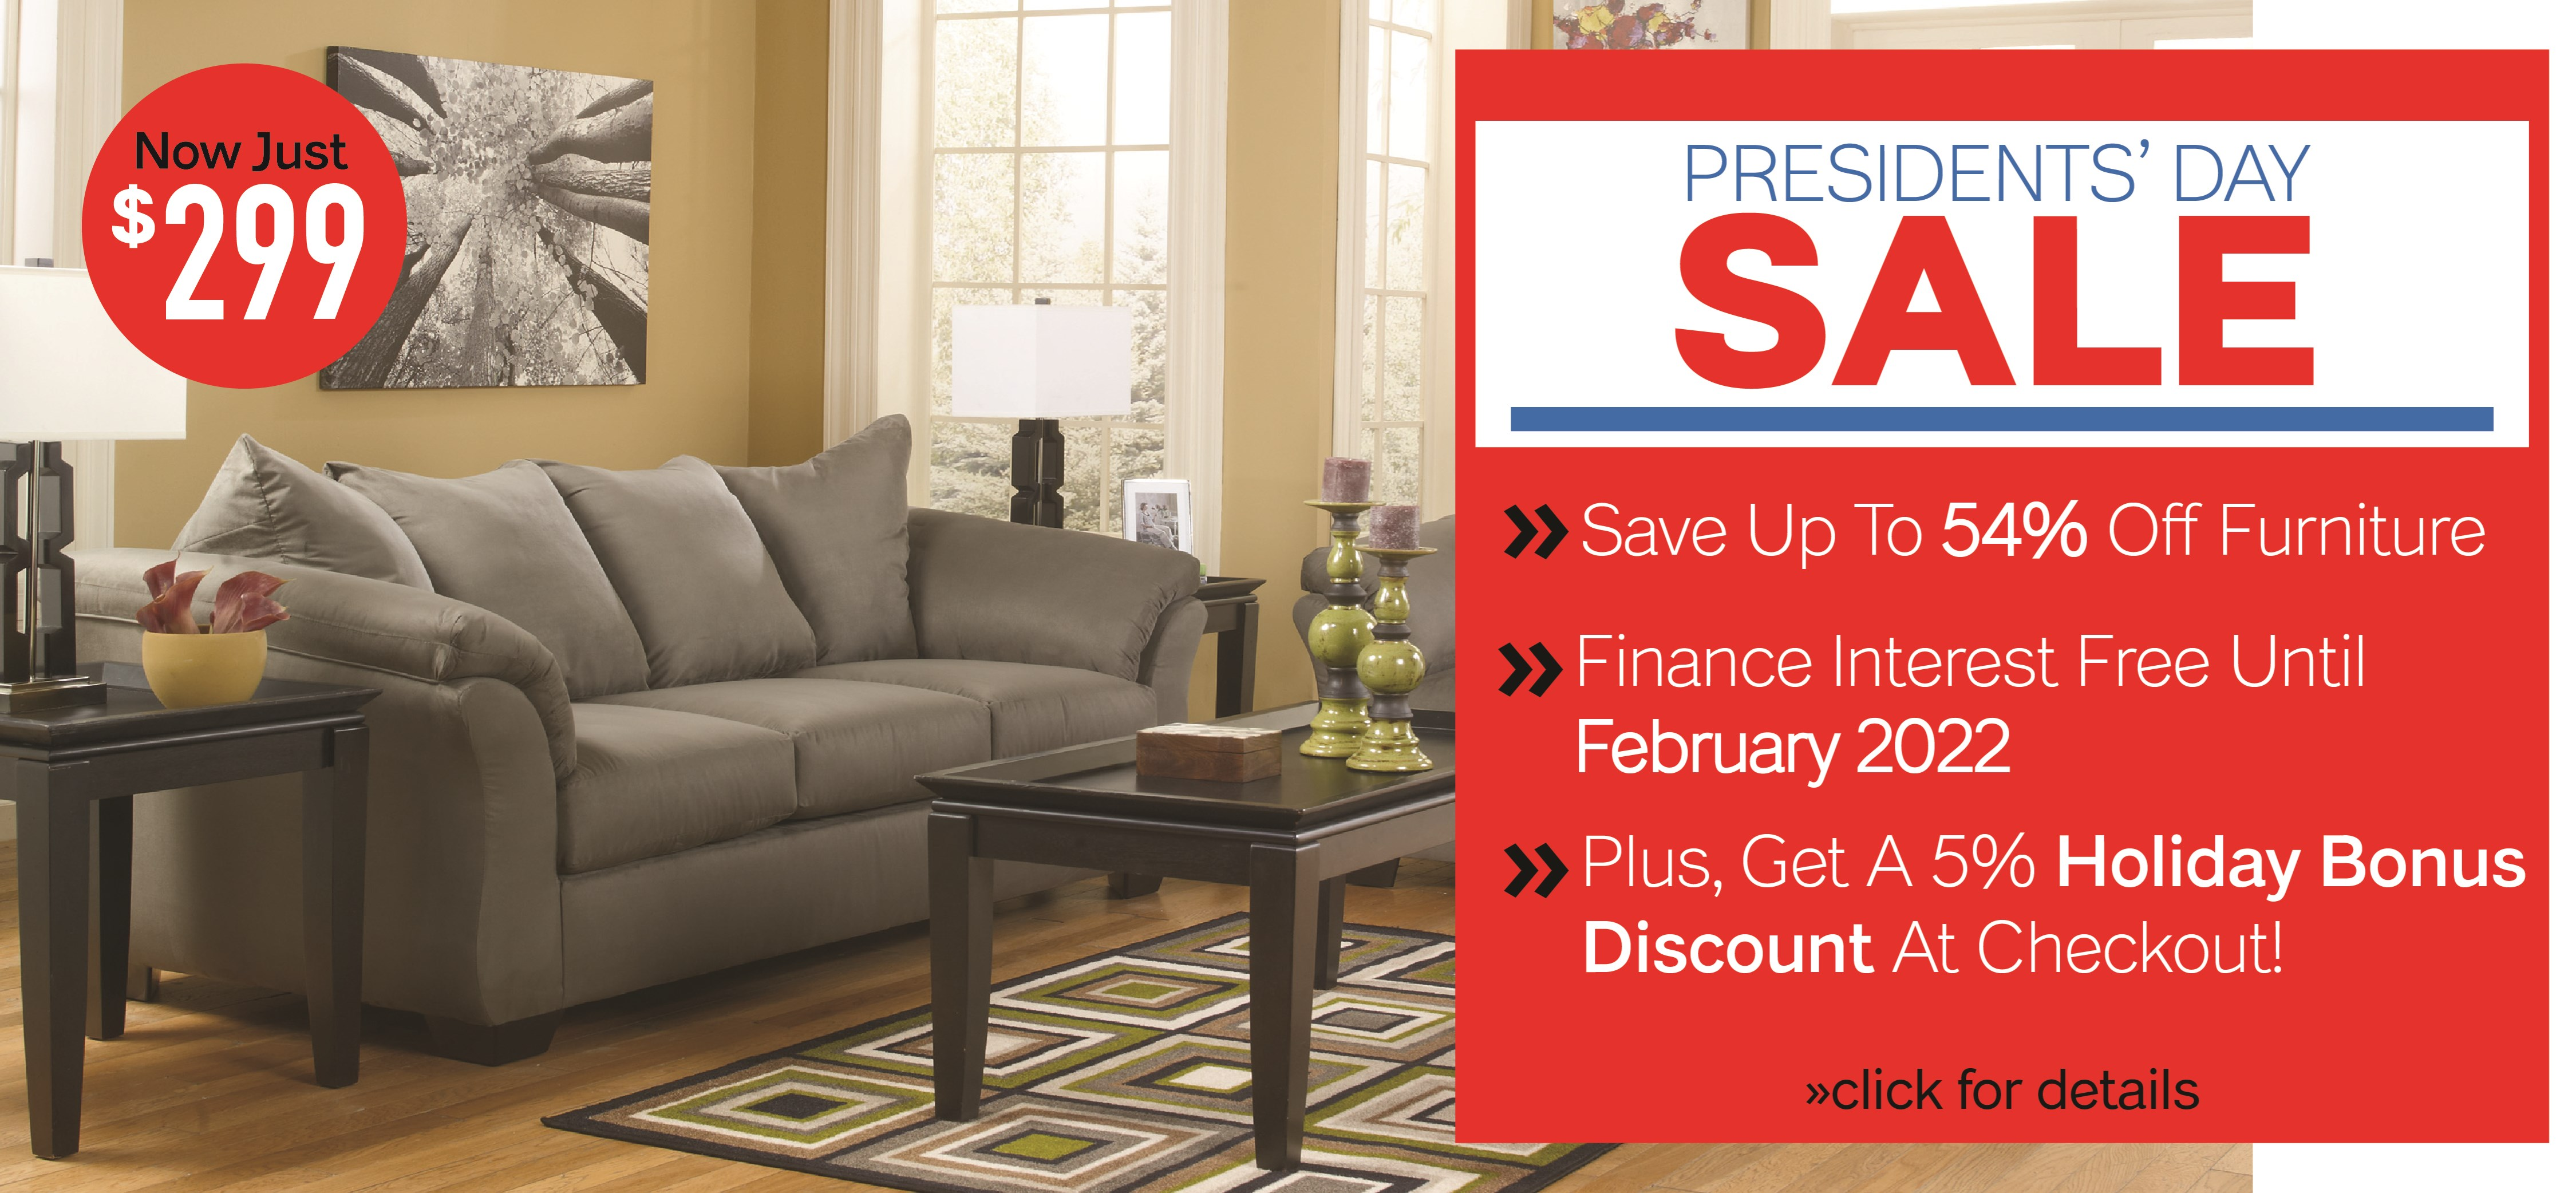 Furniture & ApplianceMart Presidents' Day Sale